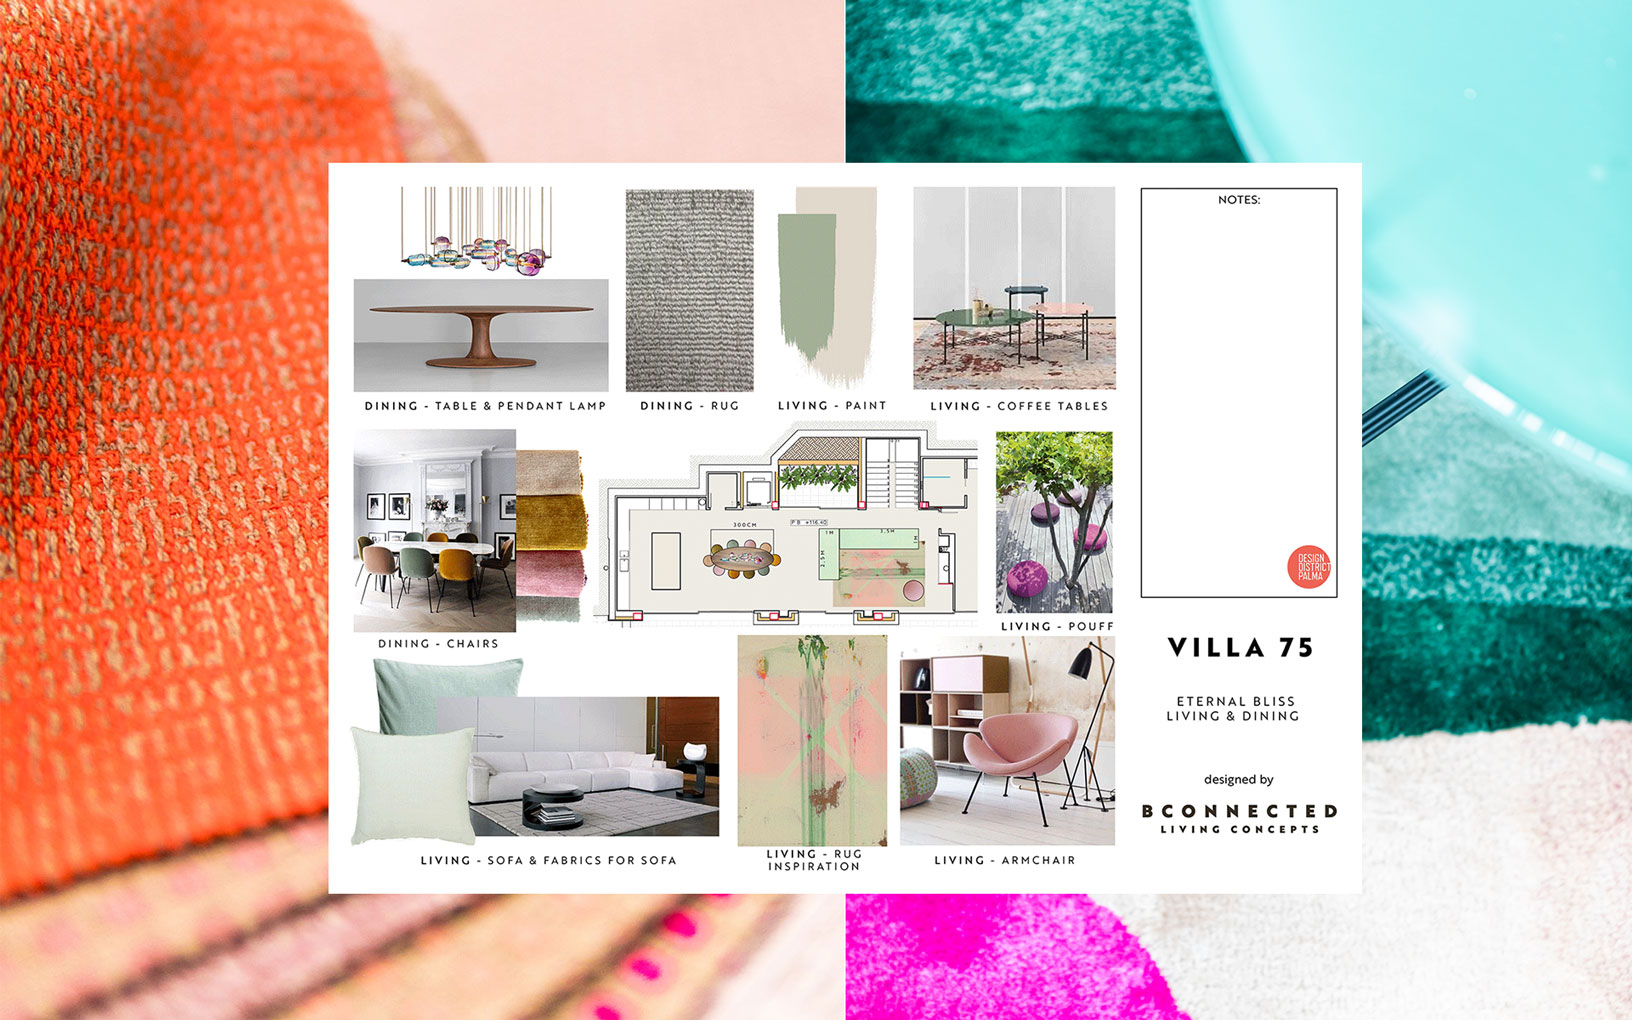 bconnected-blog-The beginning of an interior design project: process & moodboard